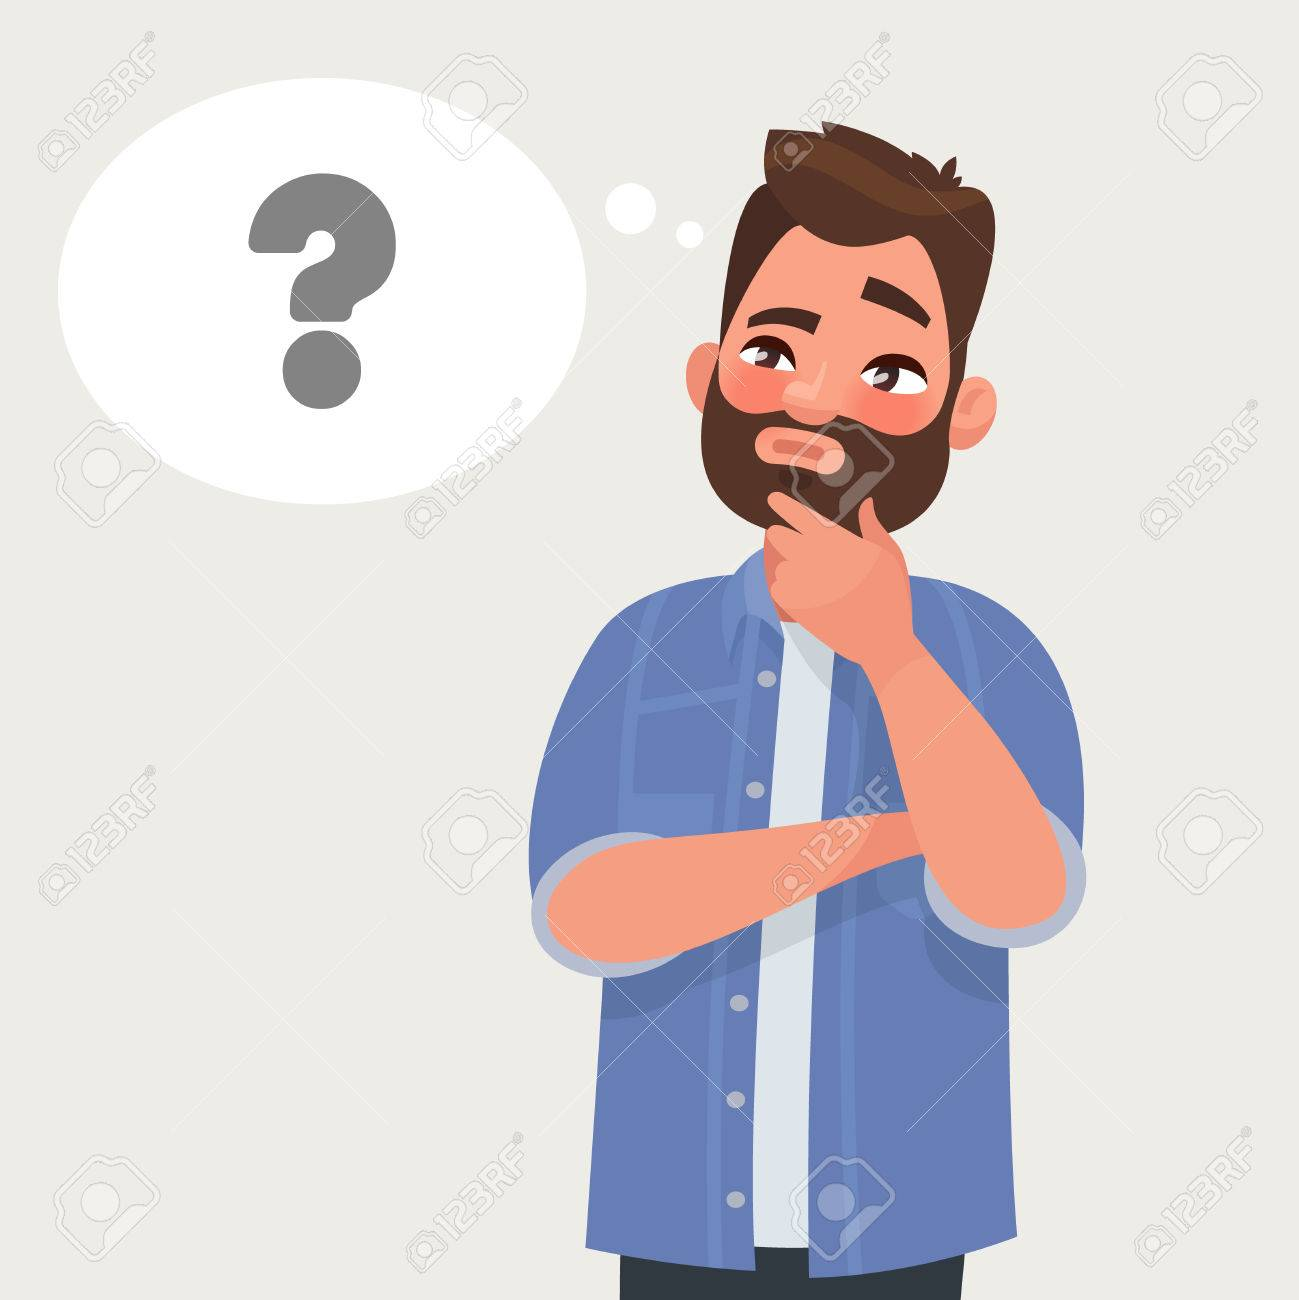 man is thinking question mark vector illustration in cartoon rh 123rf com cartoon pic of person thinking cartoon person thinking image